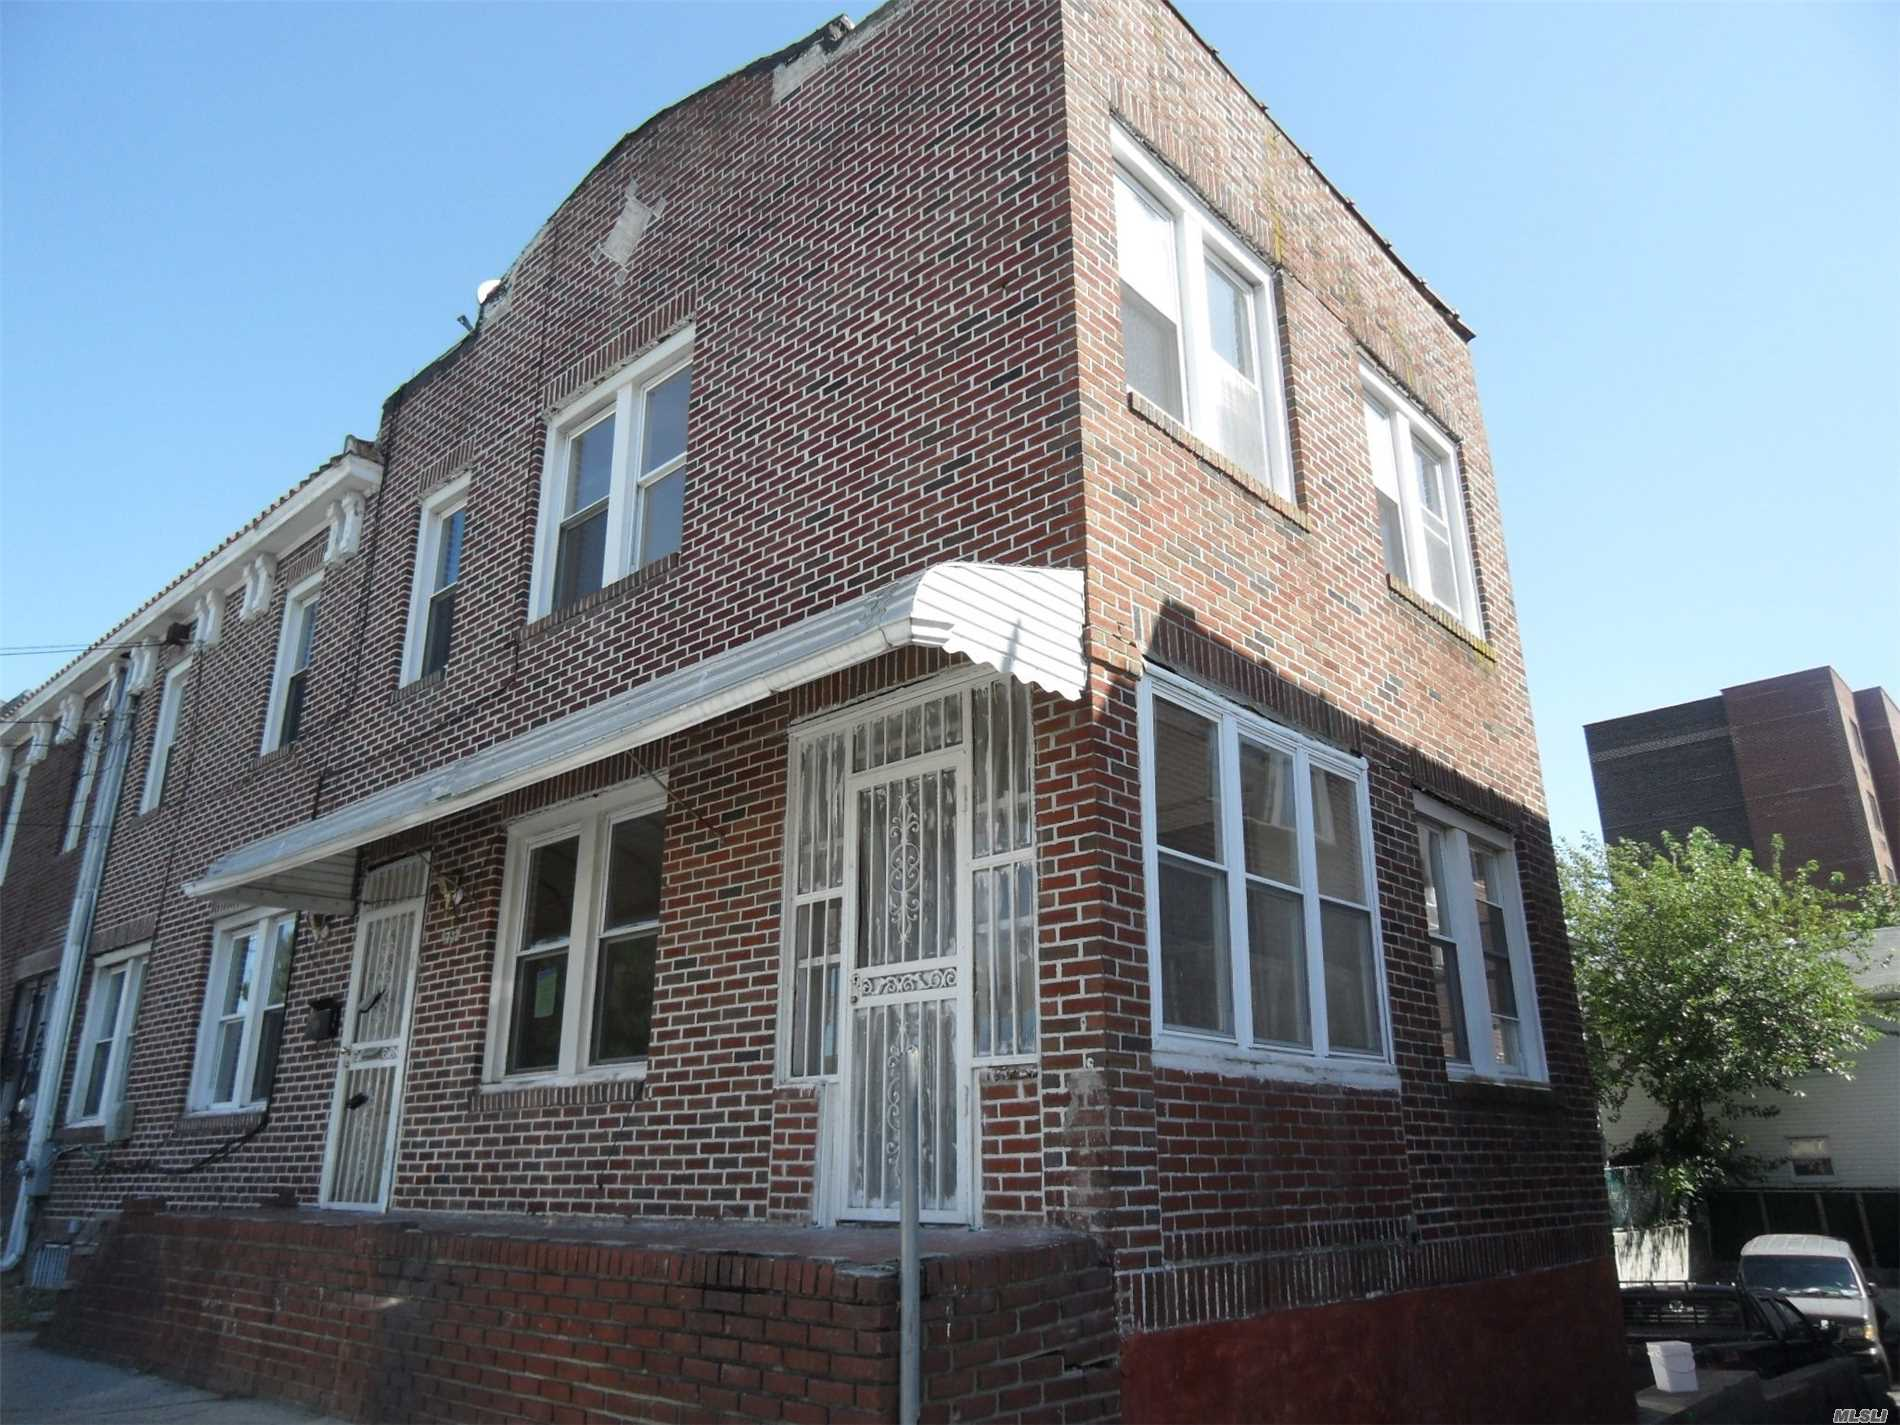 Amazing Opportunity In The Heart Of Far Rockaway! With Close Access To Tons Of Shops, Restaurants As Well As The A Train, Lirr, And Of Course The Beach! This Brick Property Boasts 3 Bedroom, 1.5 Baths A Basement And Garage With Living And Dining Room! Lots Of Sunlight Streaming In.... Let Your New Home Be Your Own Island In The Sun! This Is A Fannie Mae Homepath Property.